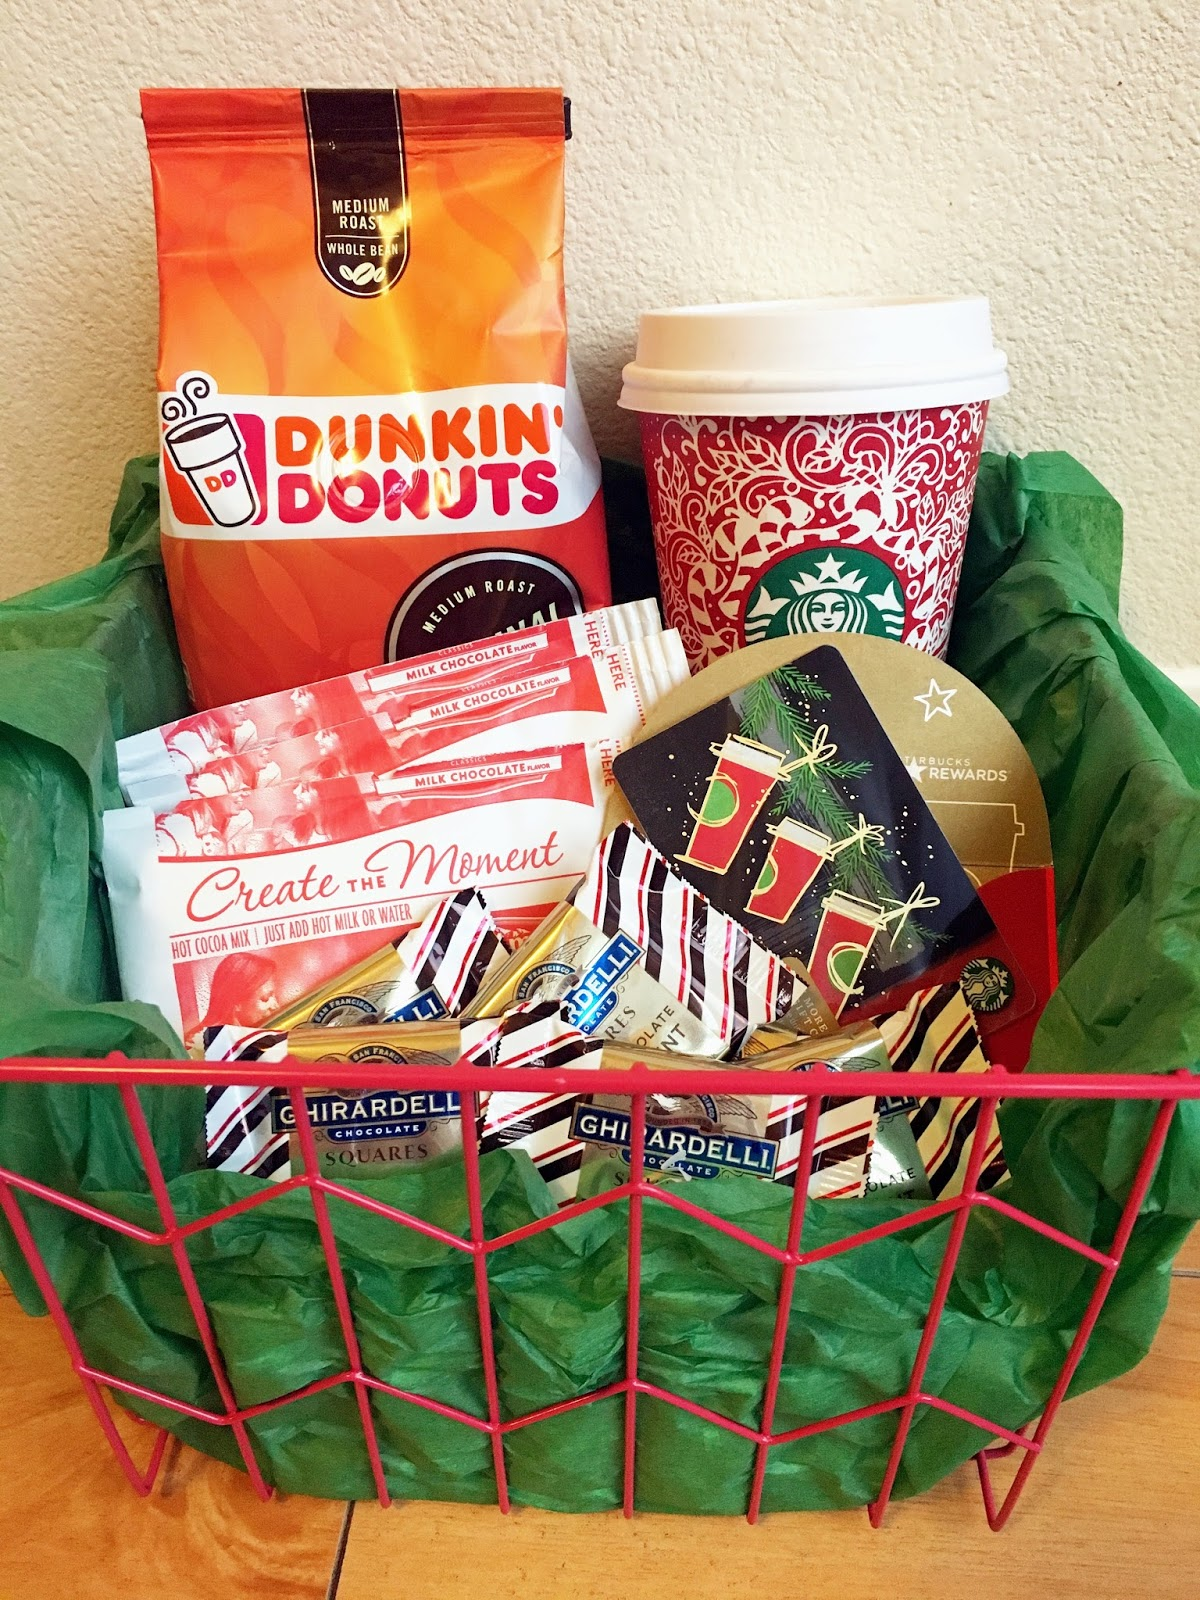 what i just realized about this gift basket is that two competing products dunkin donuts coffee